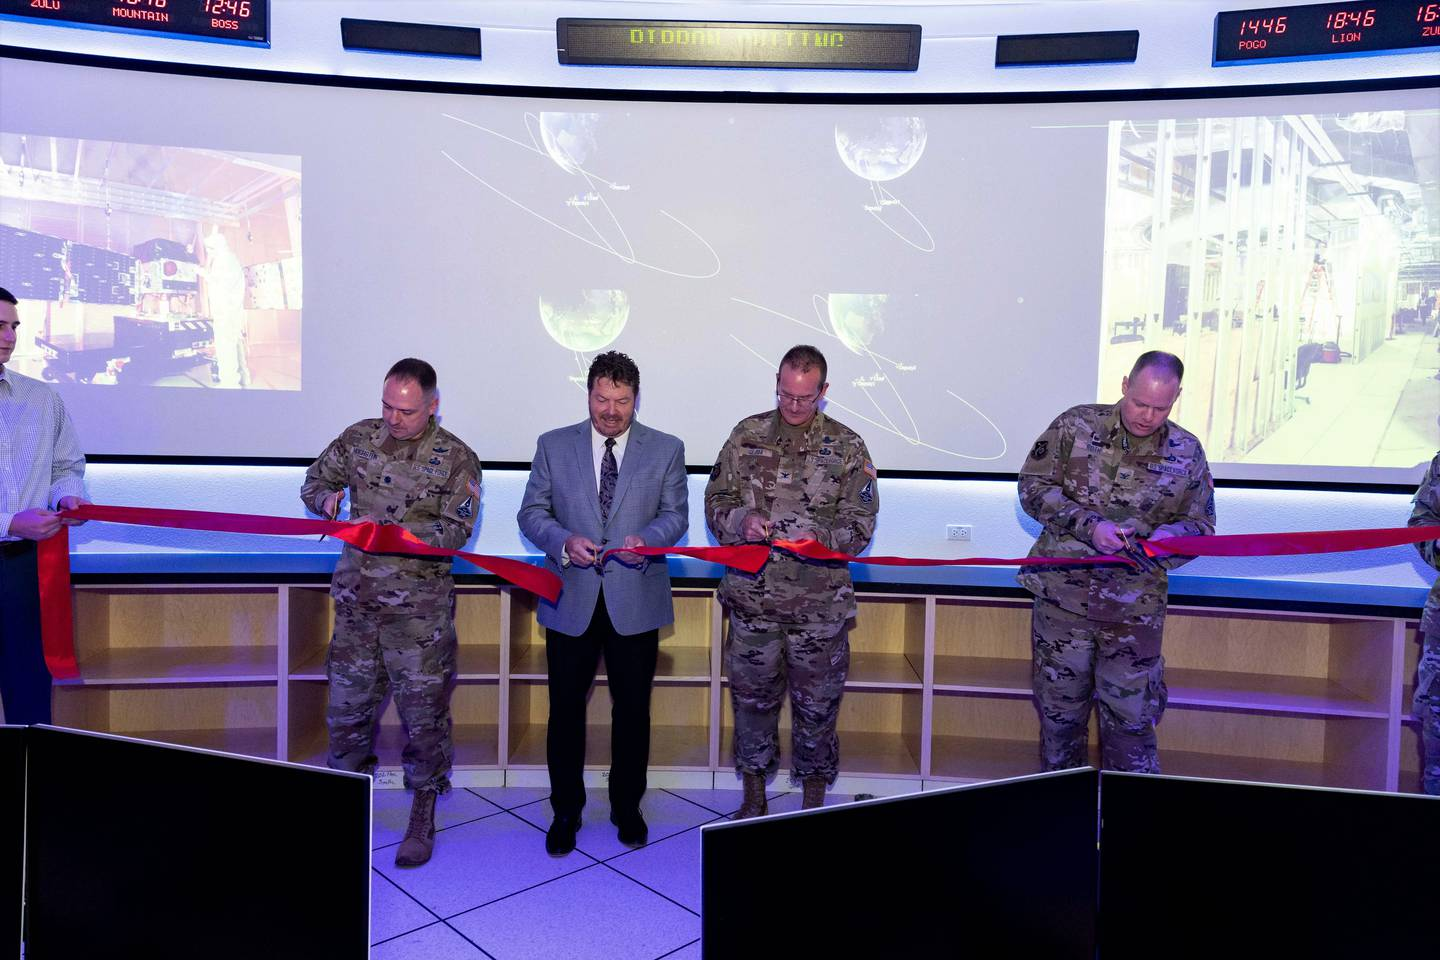 The Space and Missile Systems Center opened the new Rendezvous and Proximity (REPR) Satellite Operations Center at Kirtland Air Force Base on July 7, 2021. (U.S. Space Force)